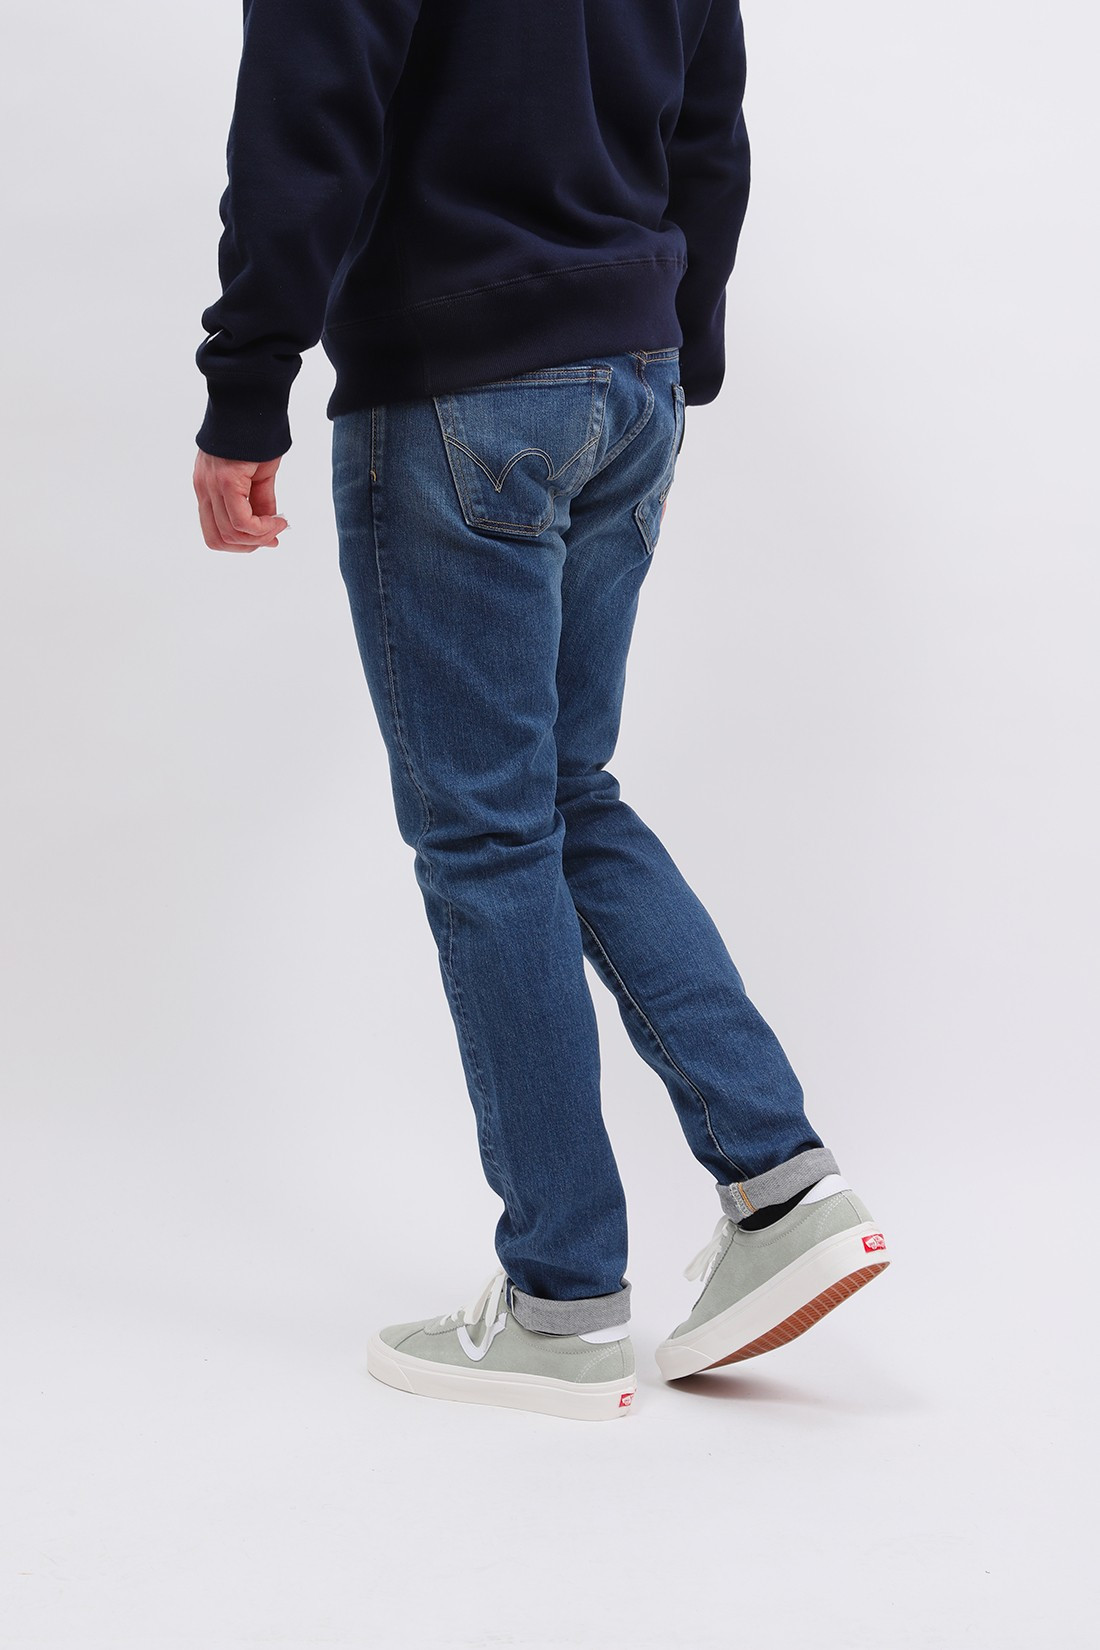 EDWIN / Slim tapered kaihara stretch Blue mid used